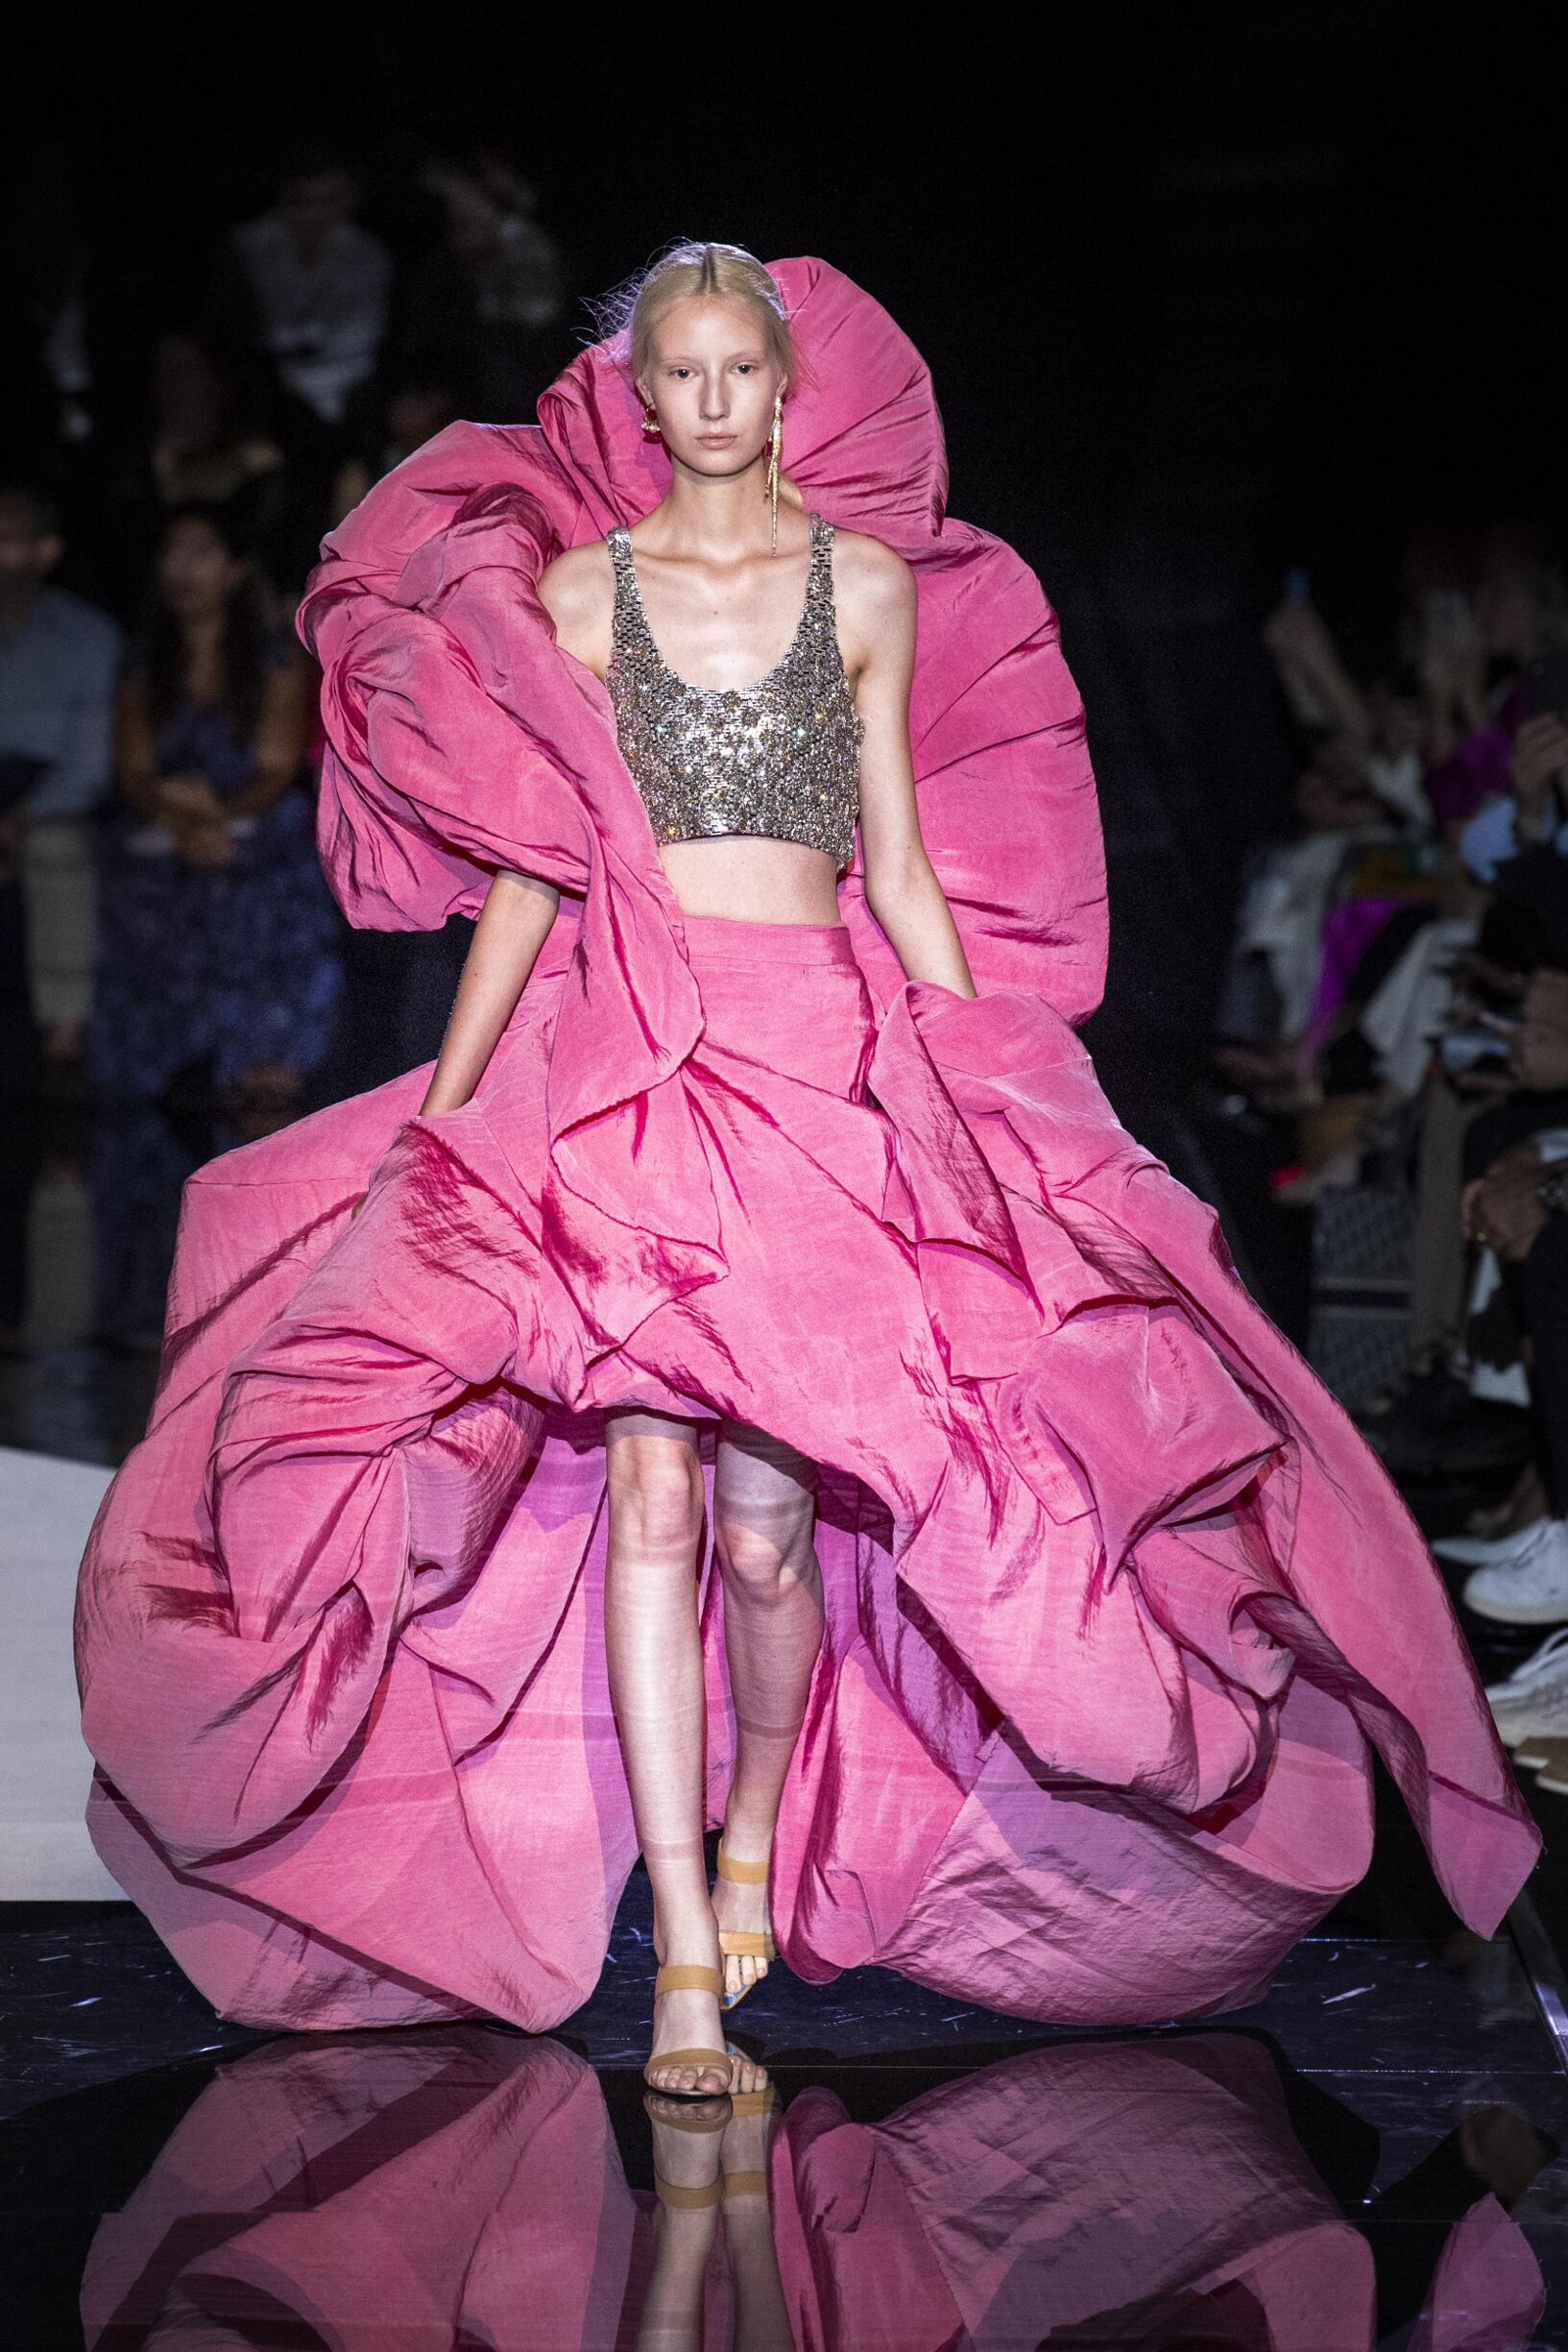 Catwalk Schiaparelli Haute Couture Women Fashion Show Winter 2019-2020